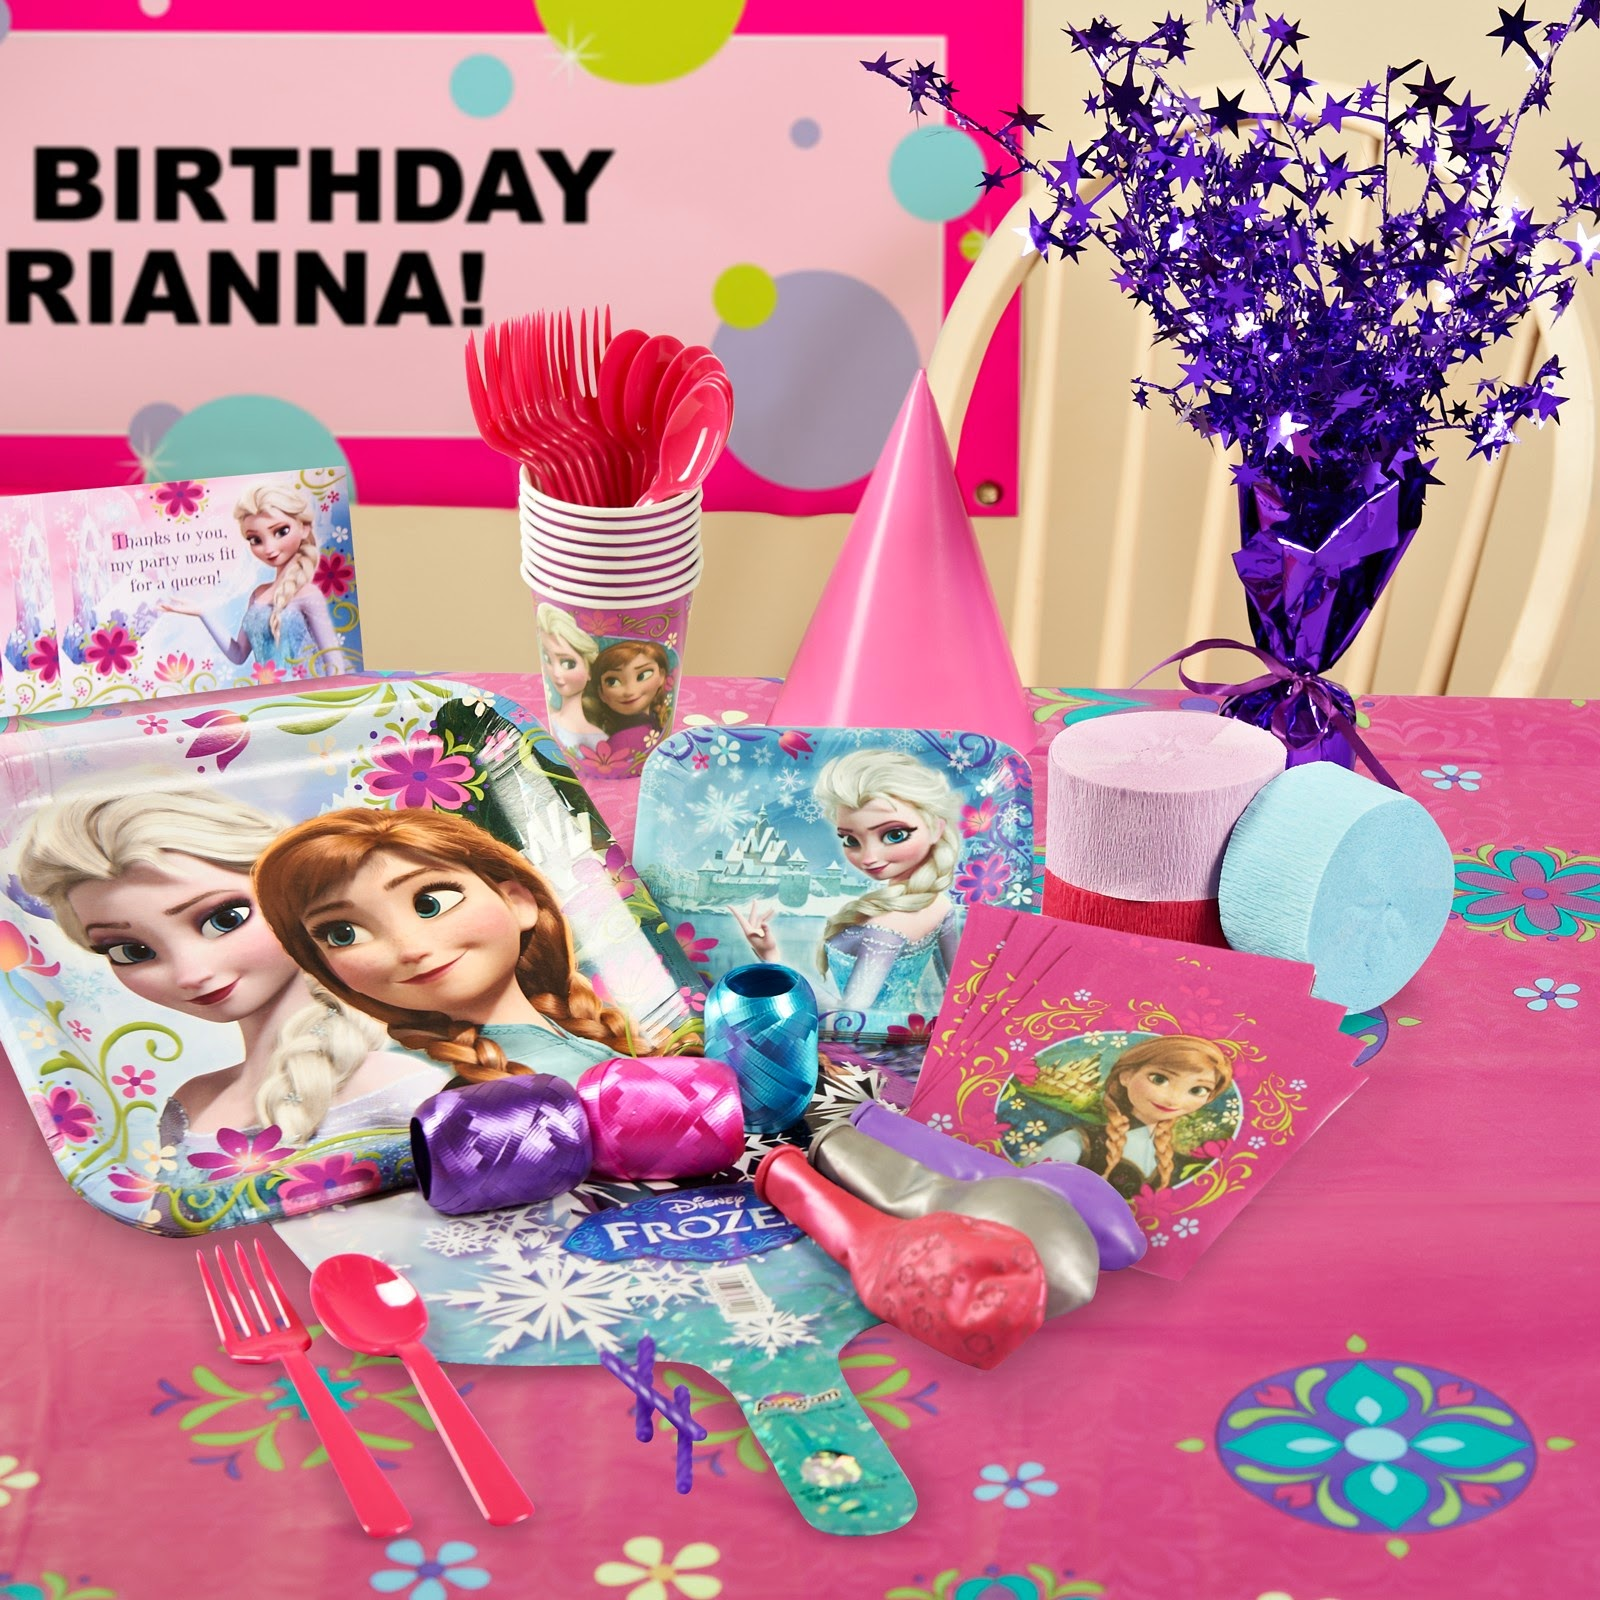 GreyGrey Designs: Giveaway! Frozen Birthday Party Pack For